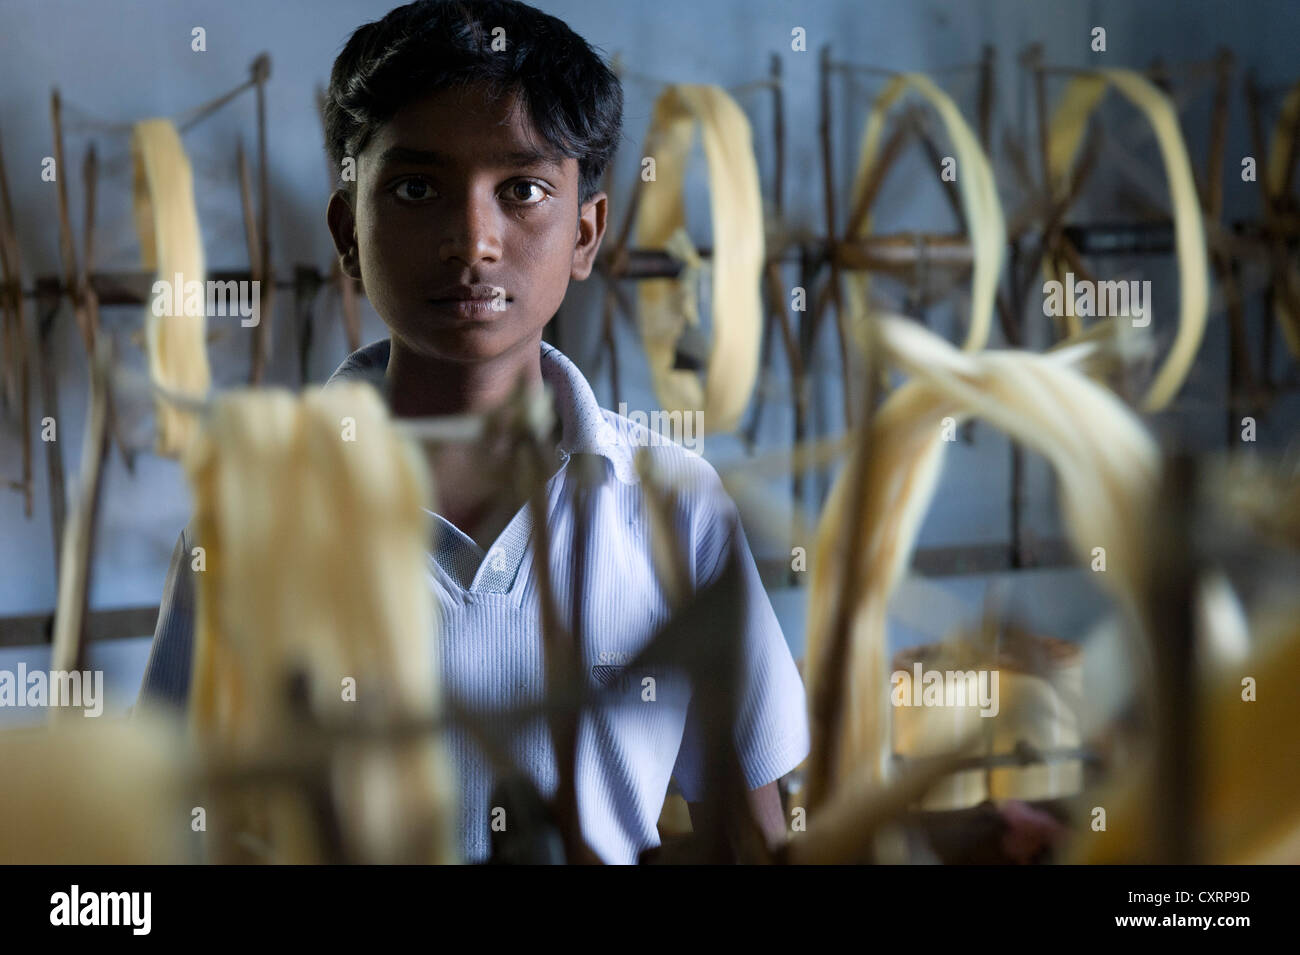 Child labourer working in a mosquito net factory, Karur, South India, India, Asia - Stock Image